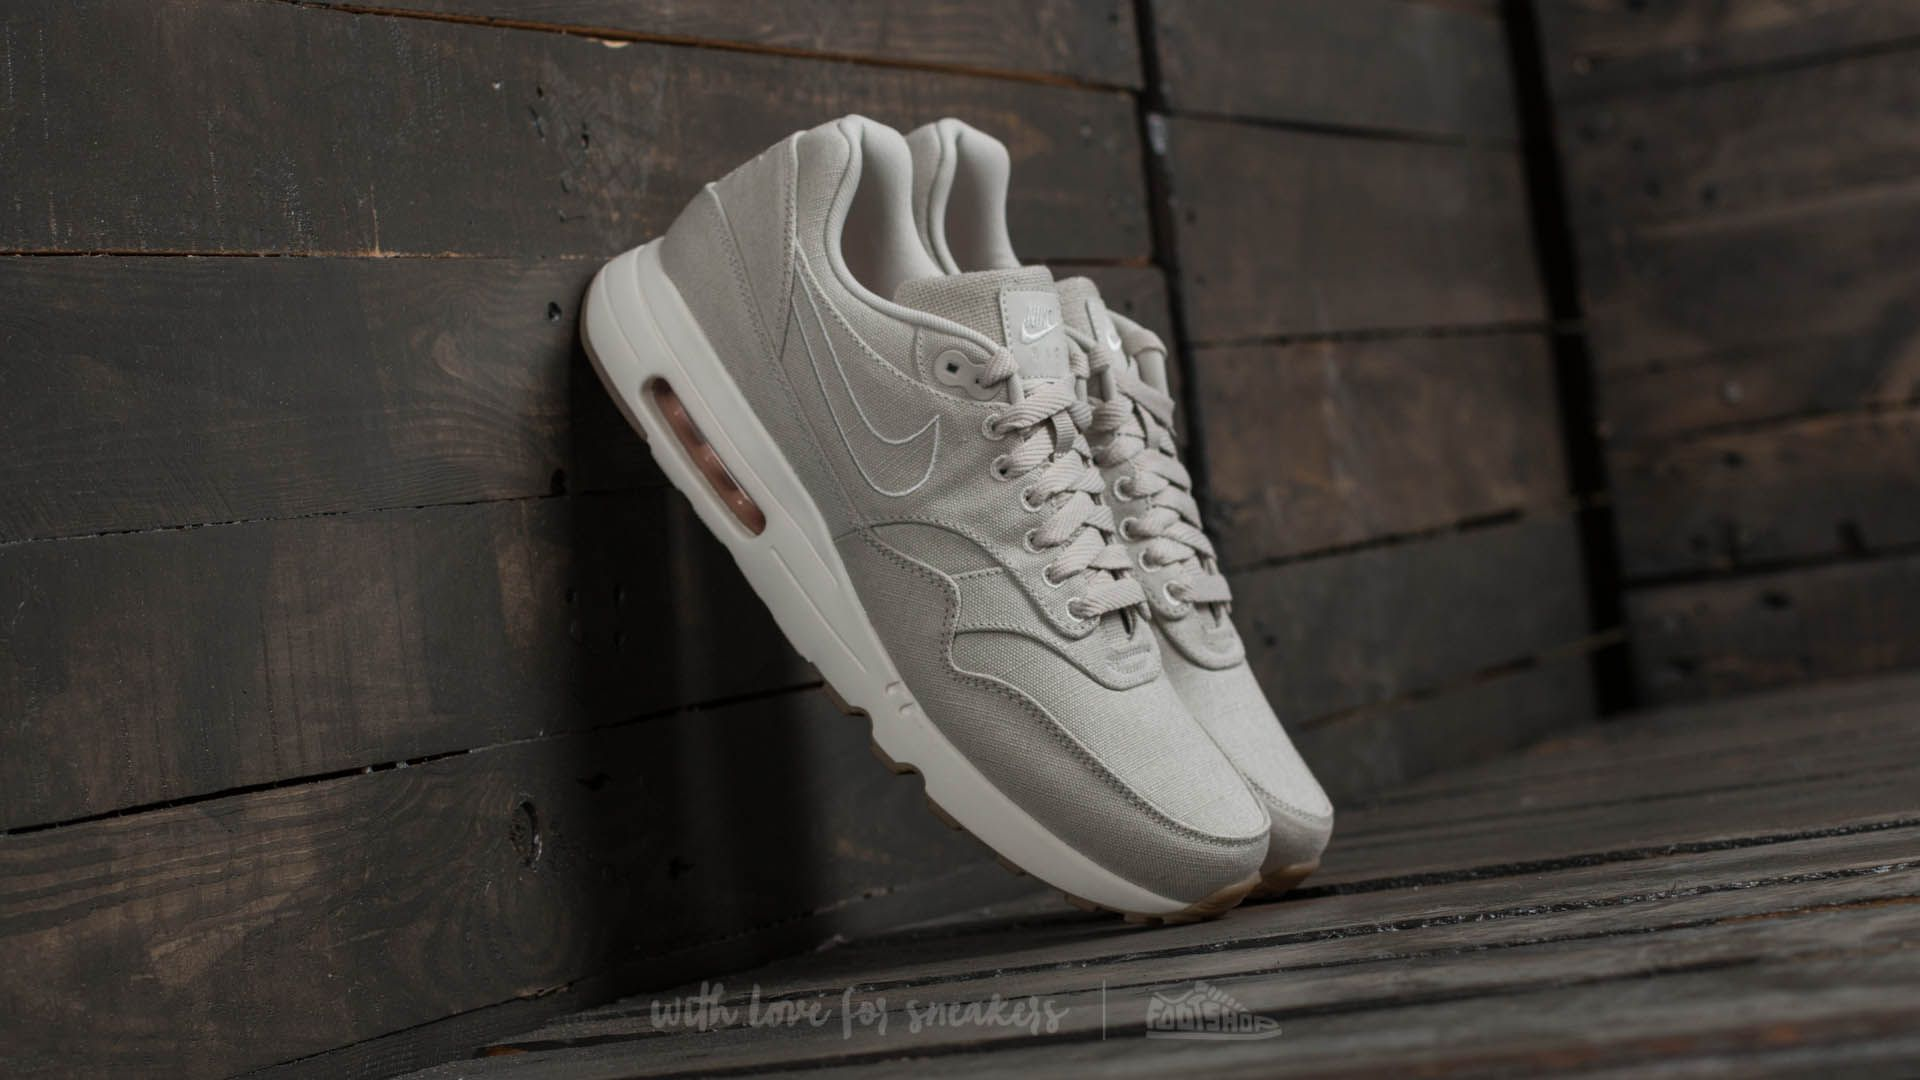 Nike Air Max 1 Ultra 2.0 Txt Light Bone/ Light Bone-Sail